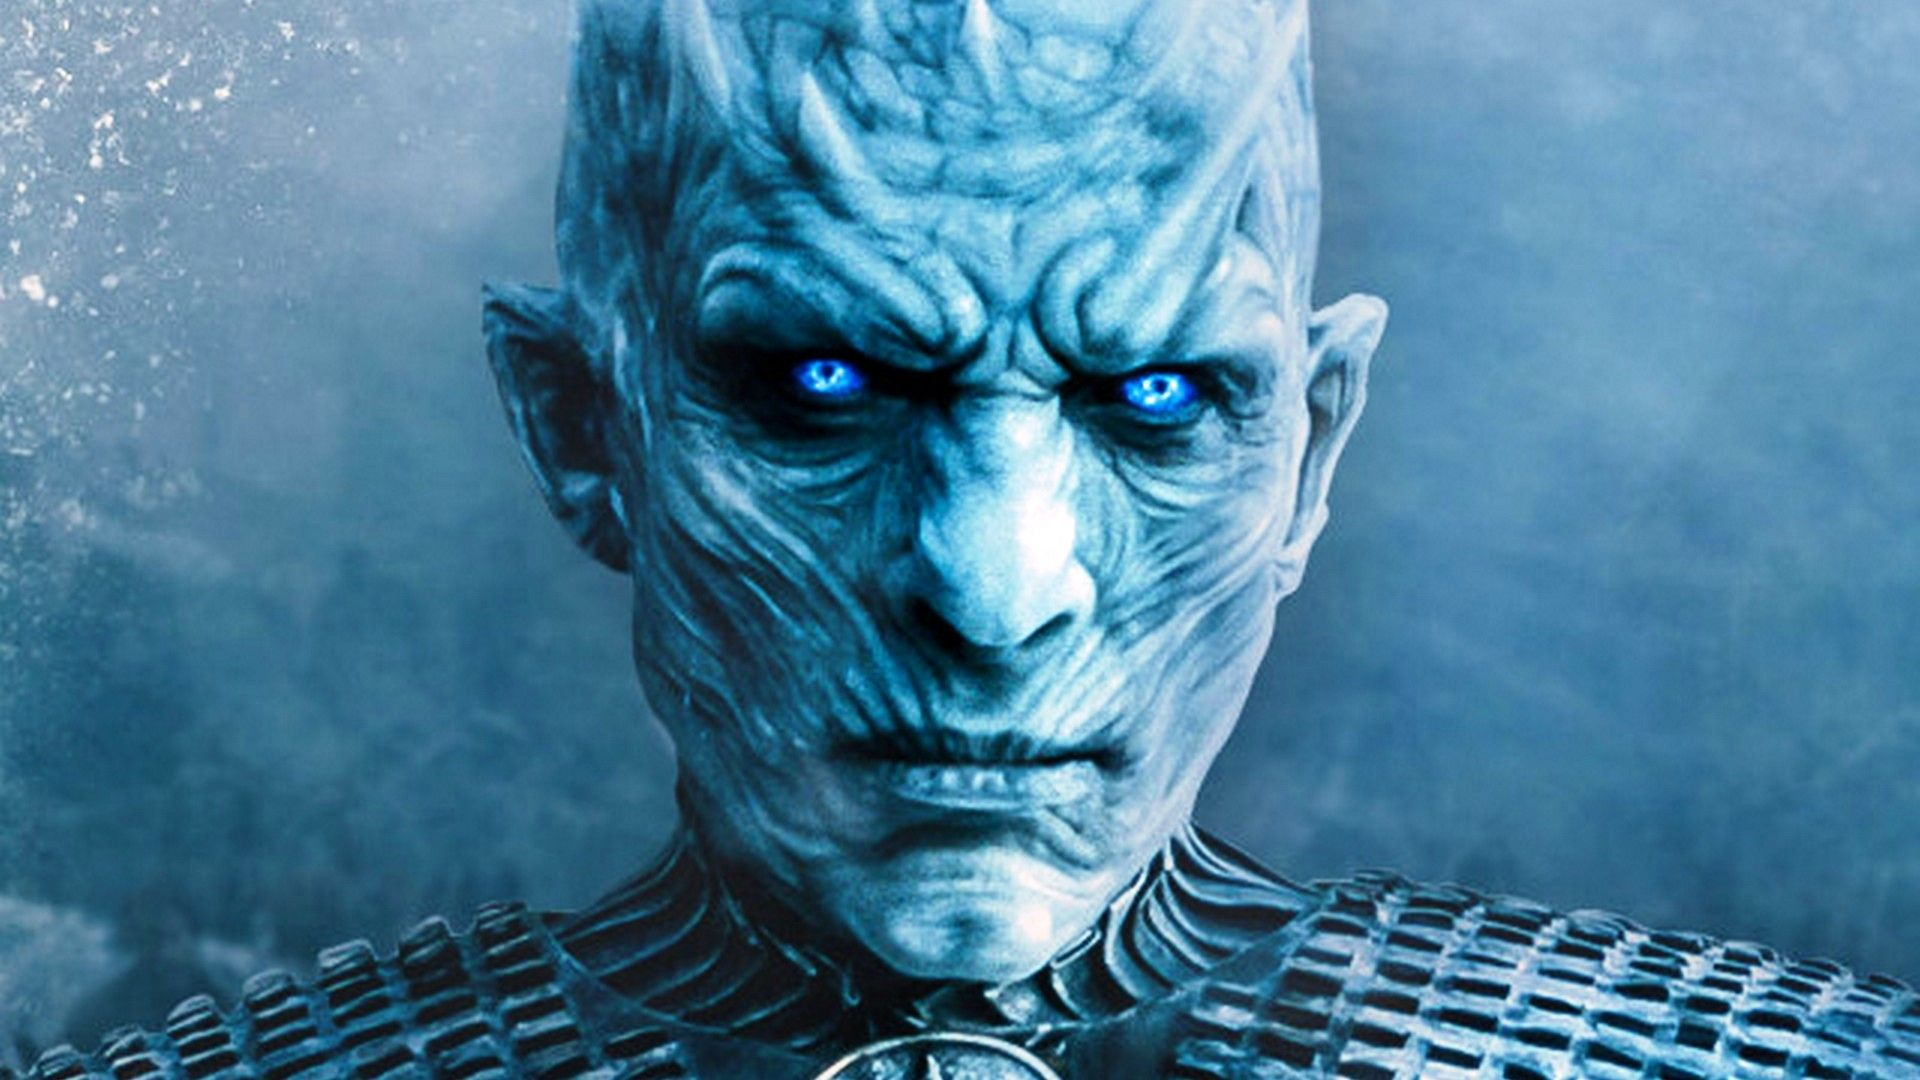 Night King Wallpaper Hd Best Movie Poster Wallpaper Hd Movie